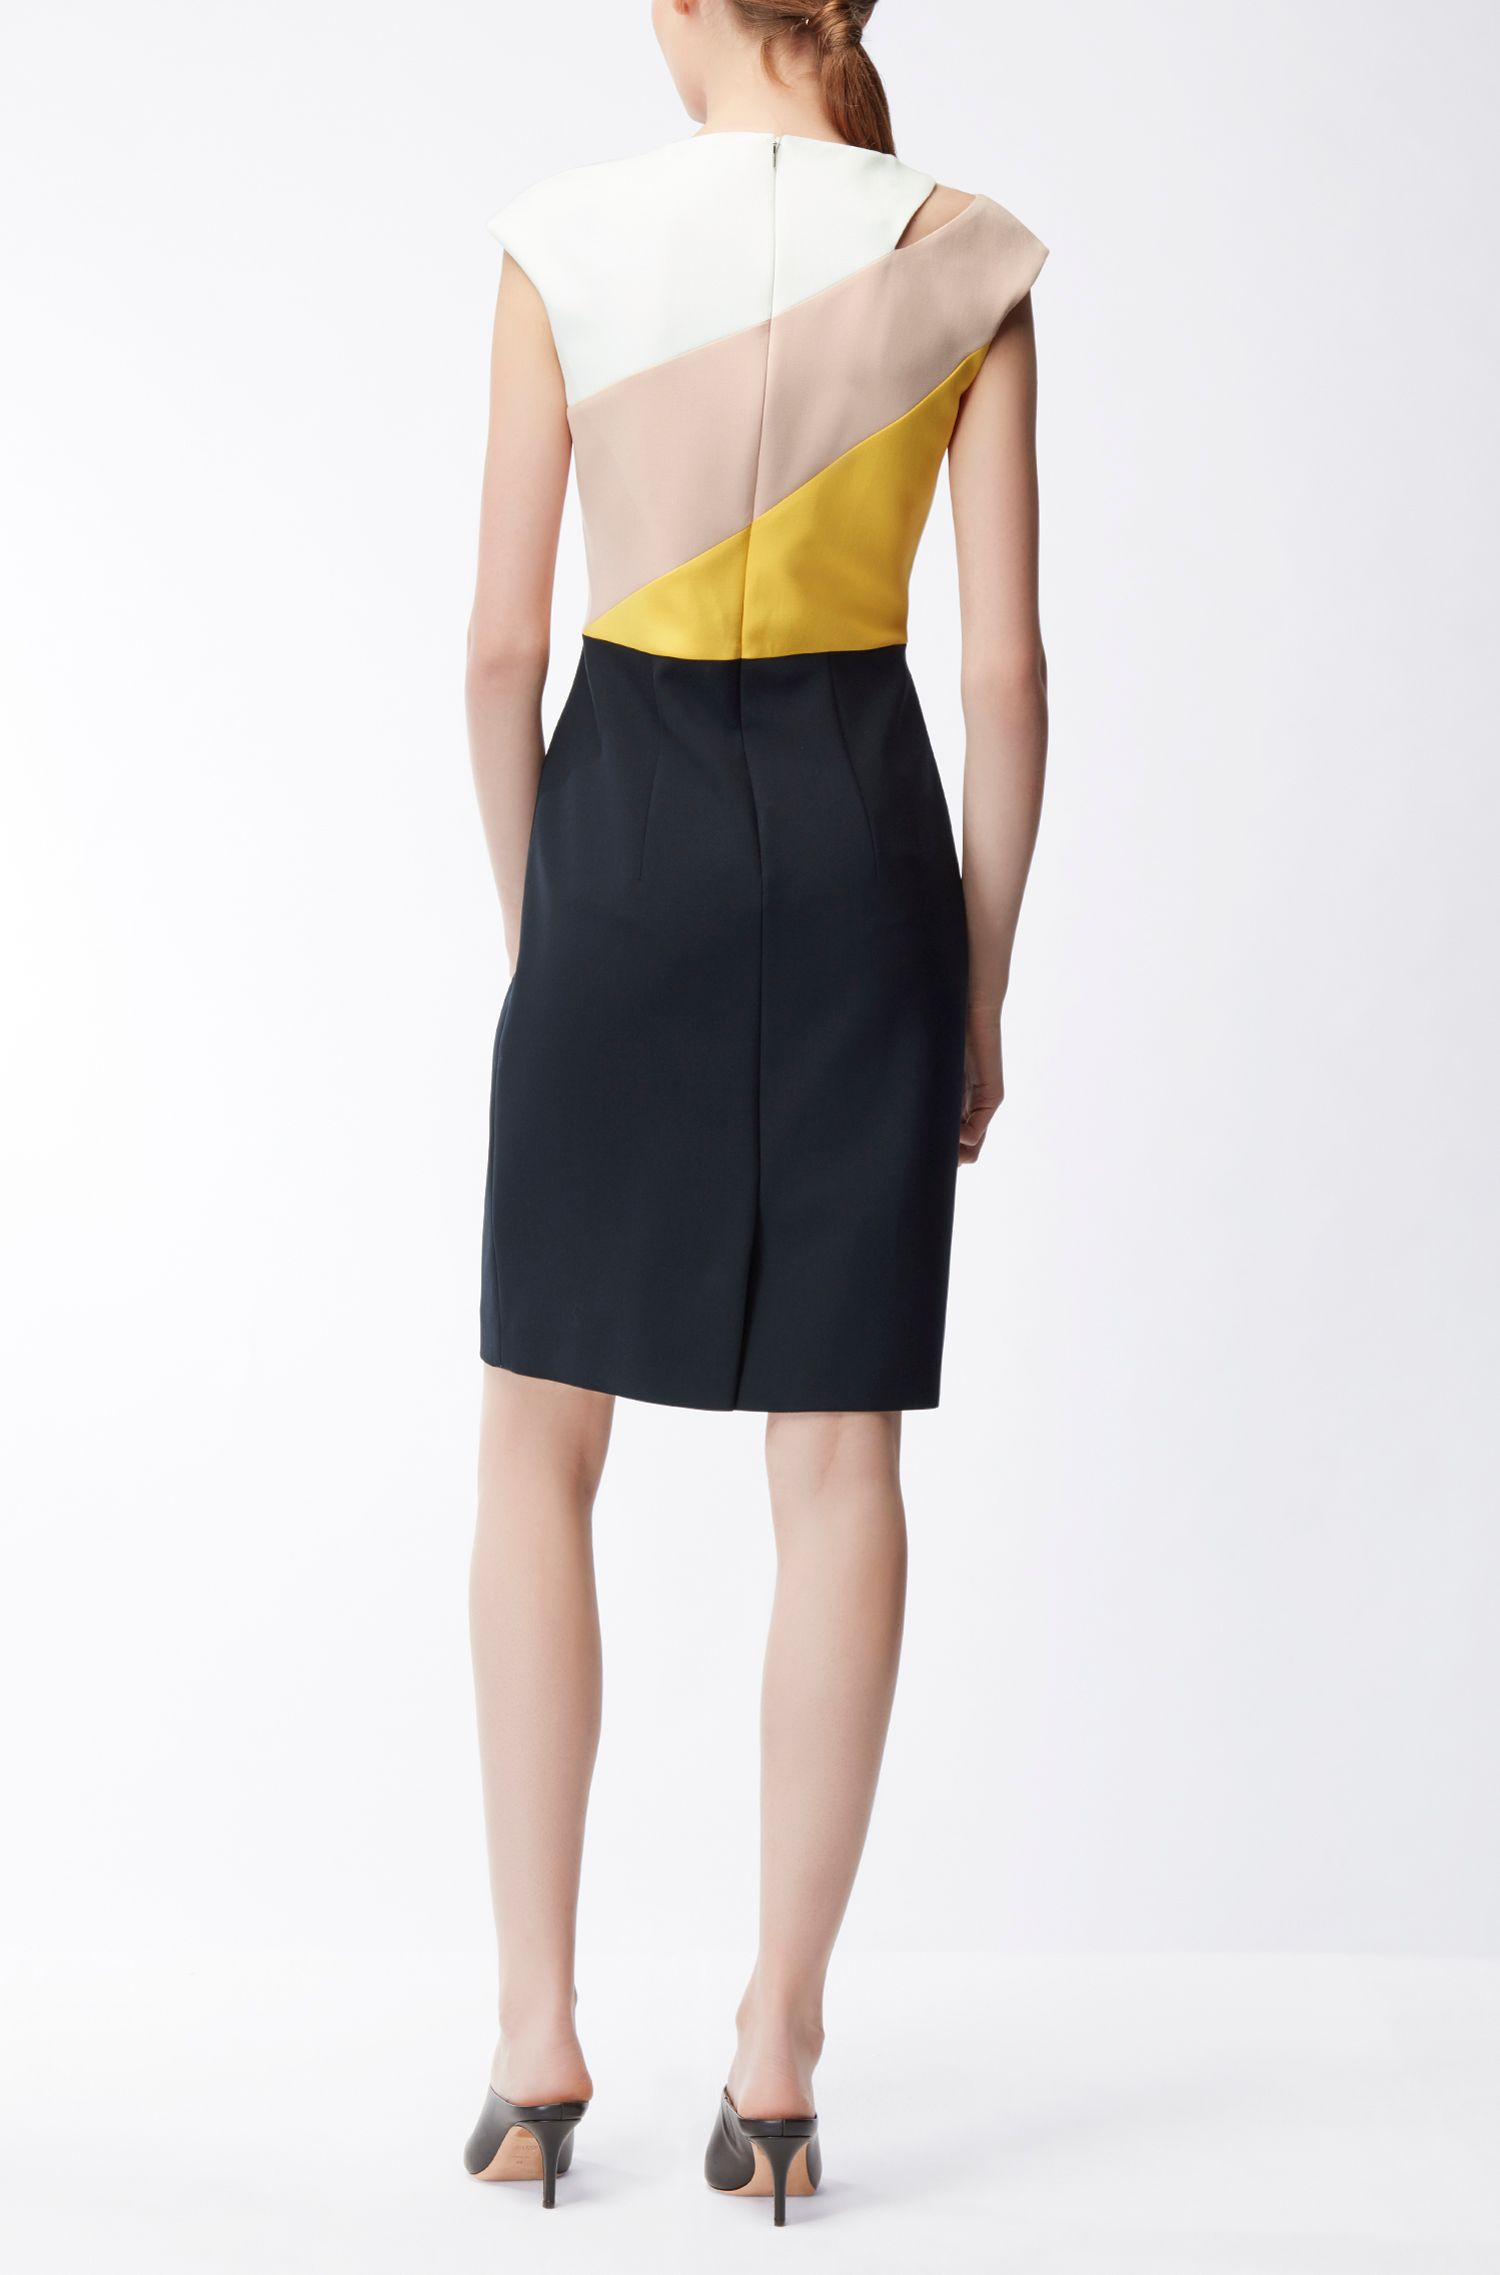 Cut-Out Colorblocked Dress | Danouk